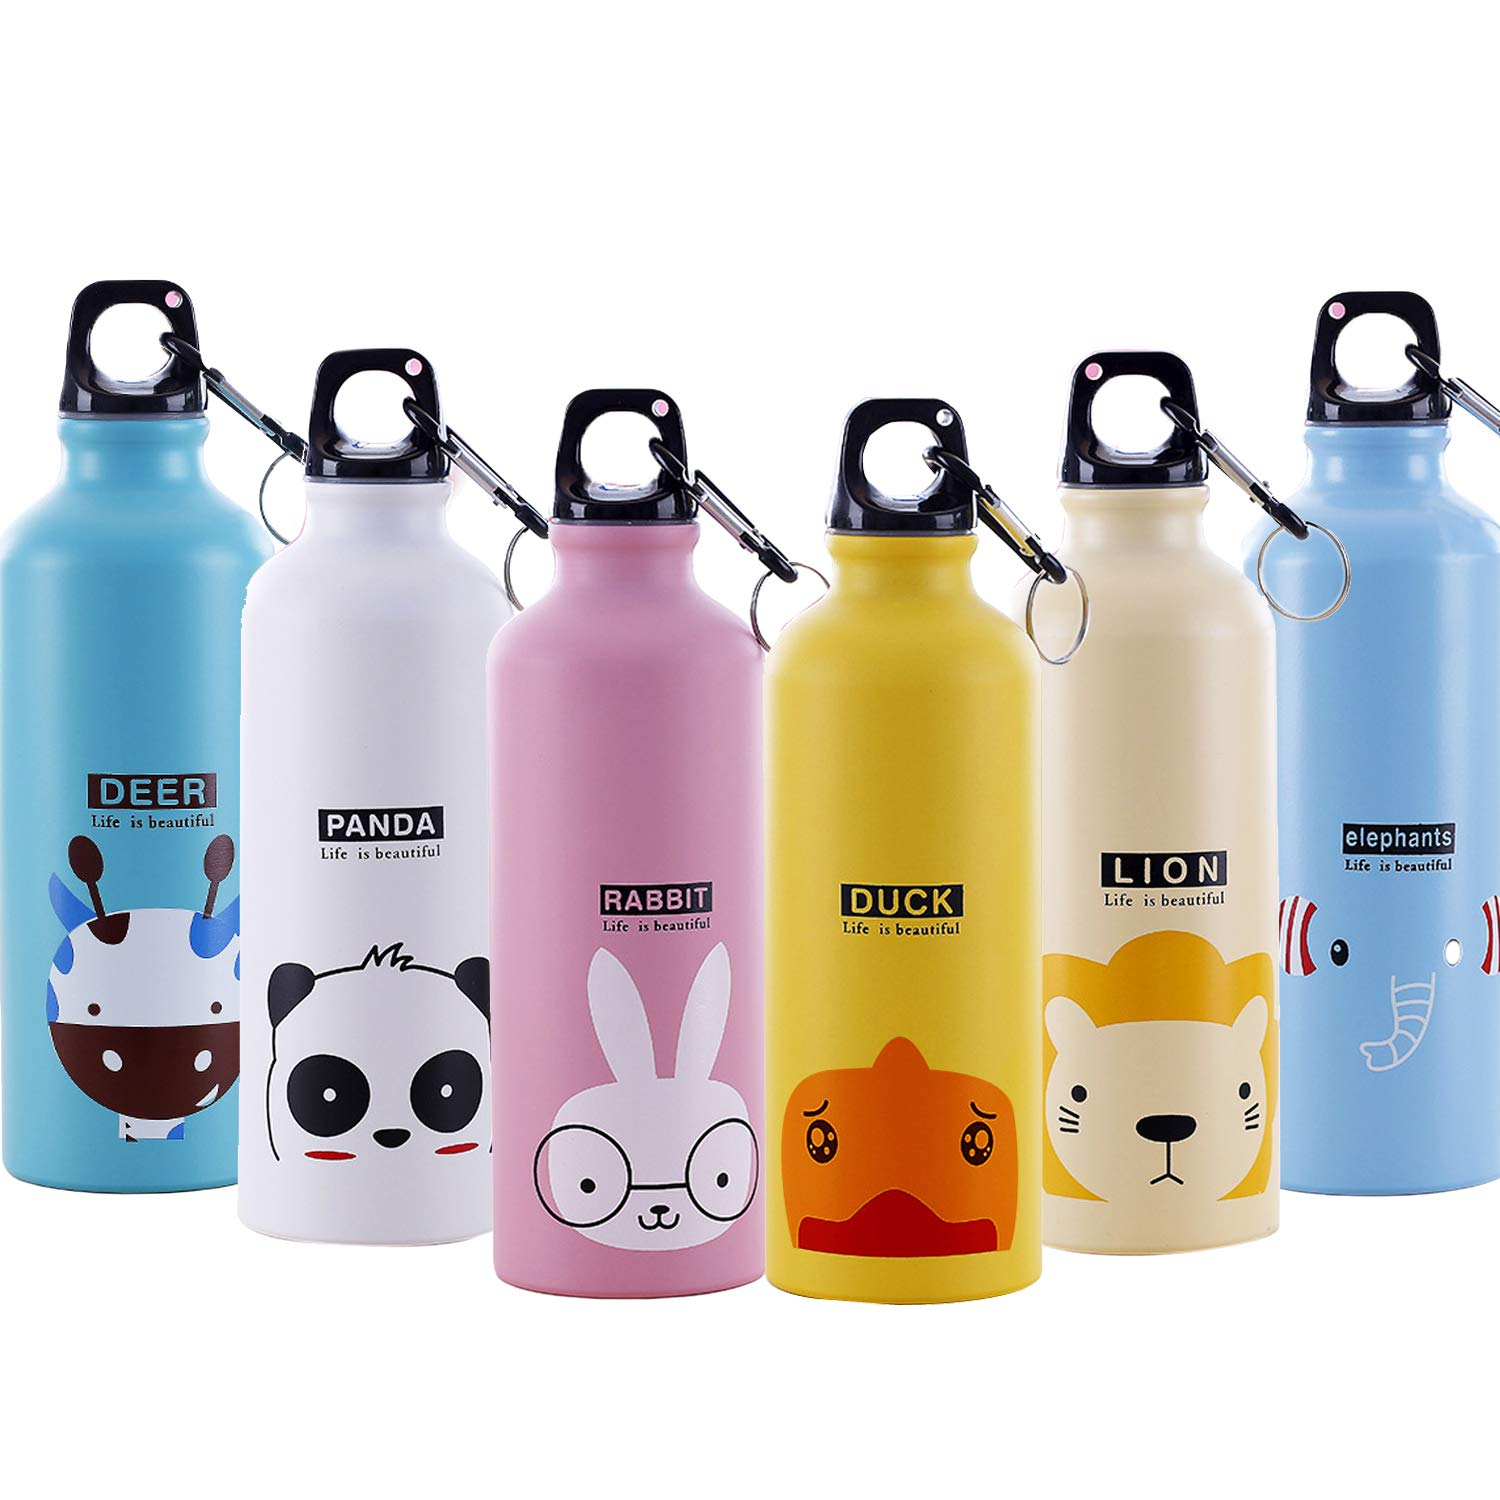 Large 500ml Leakproof Fitness Sports Water Bottle Aluminum Alloy Portable with Carabiner Clip